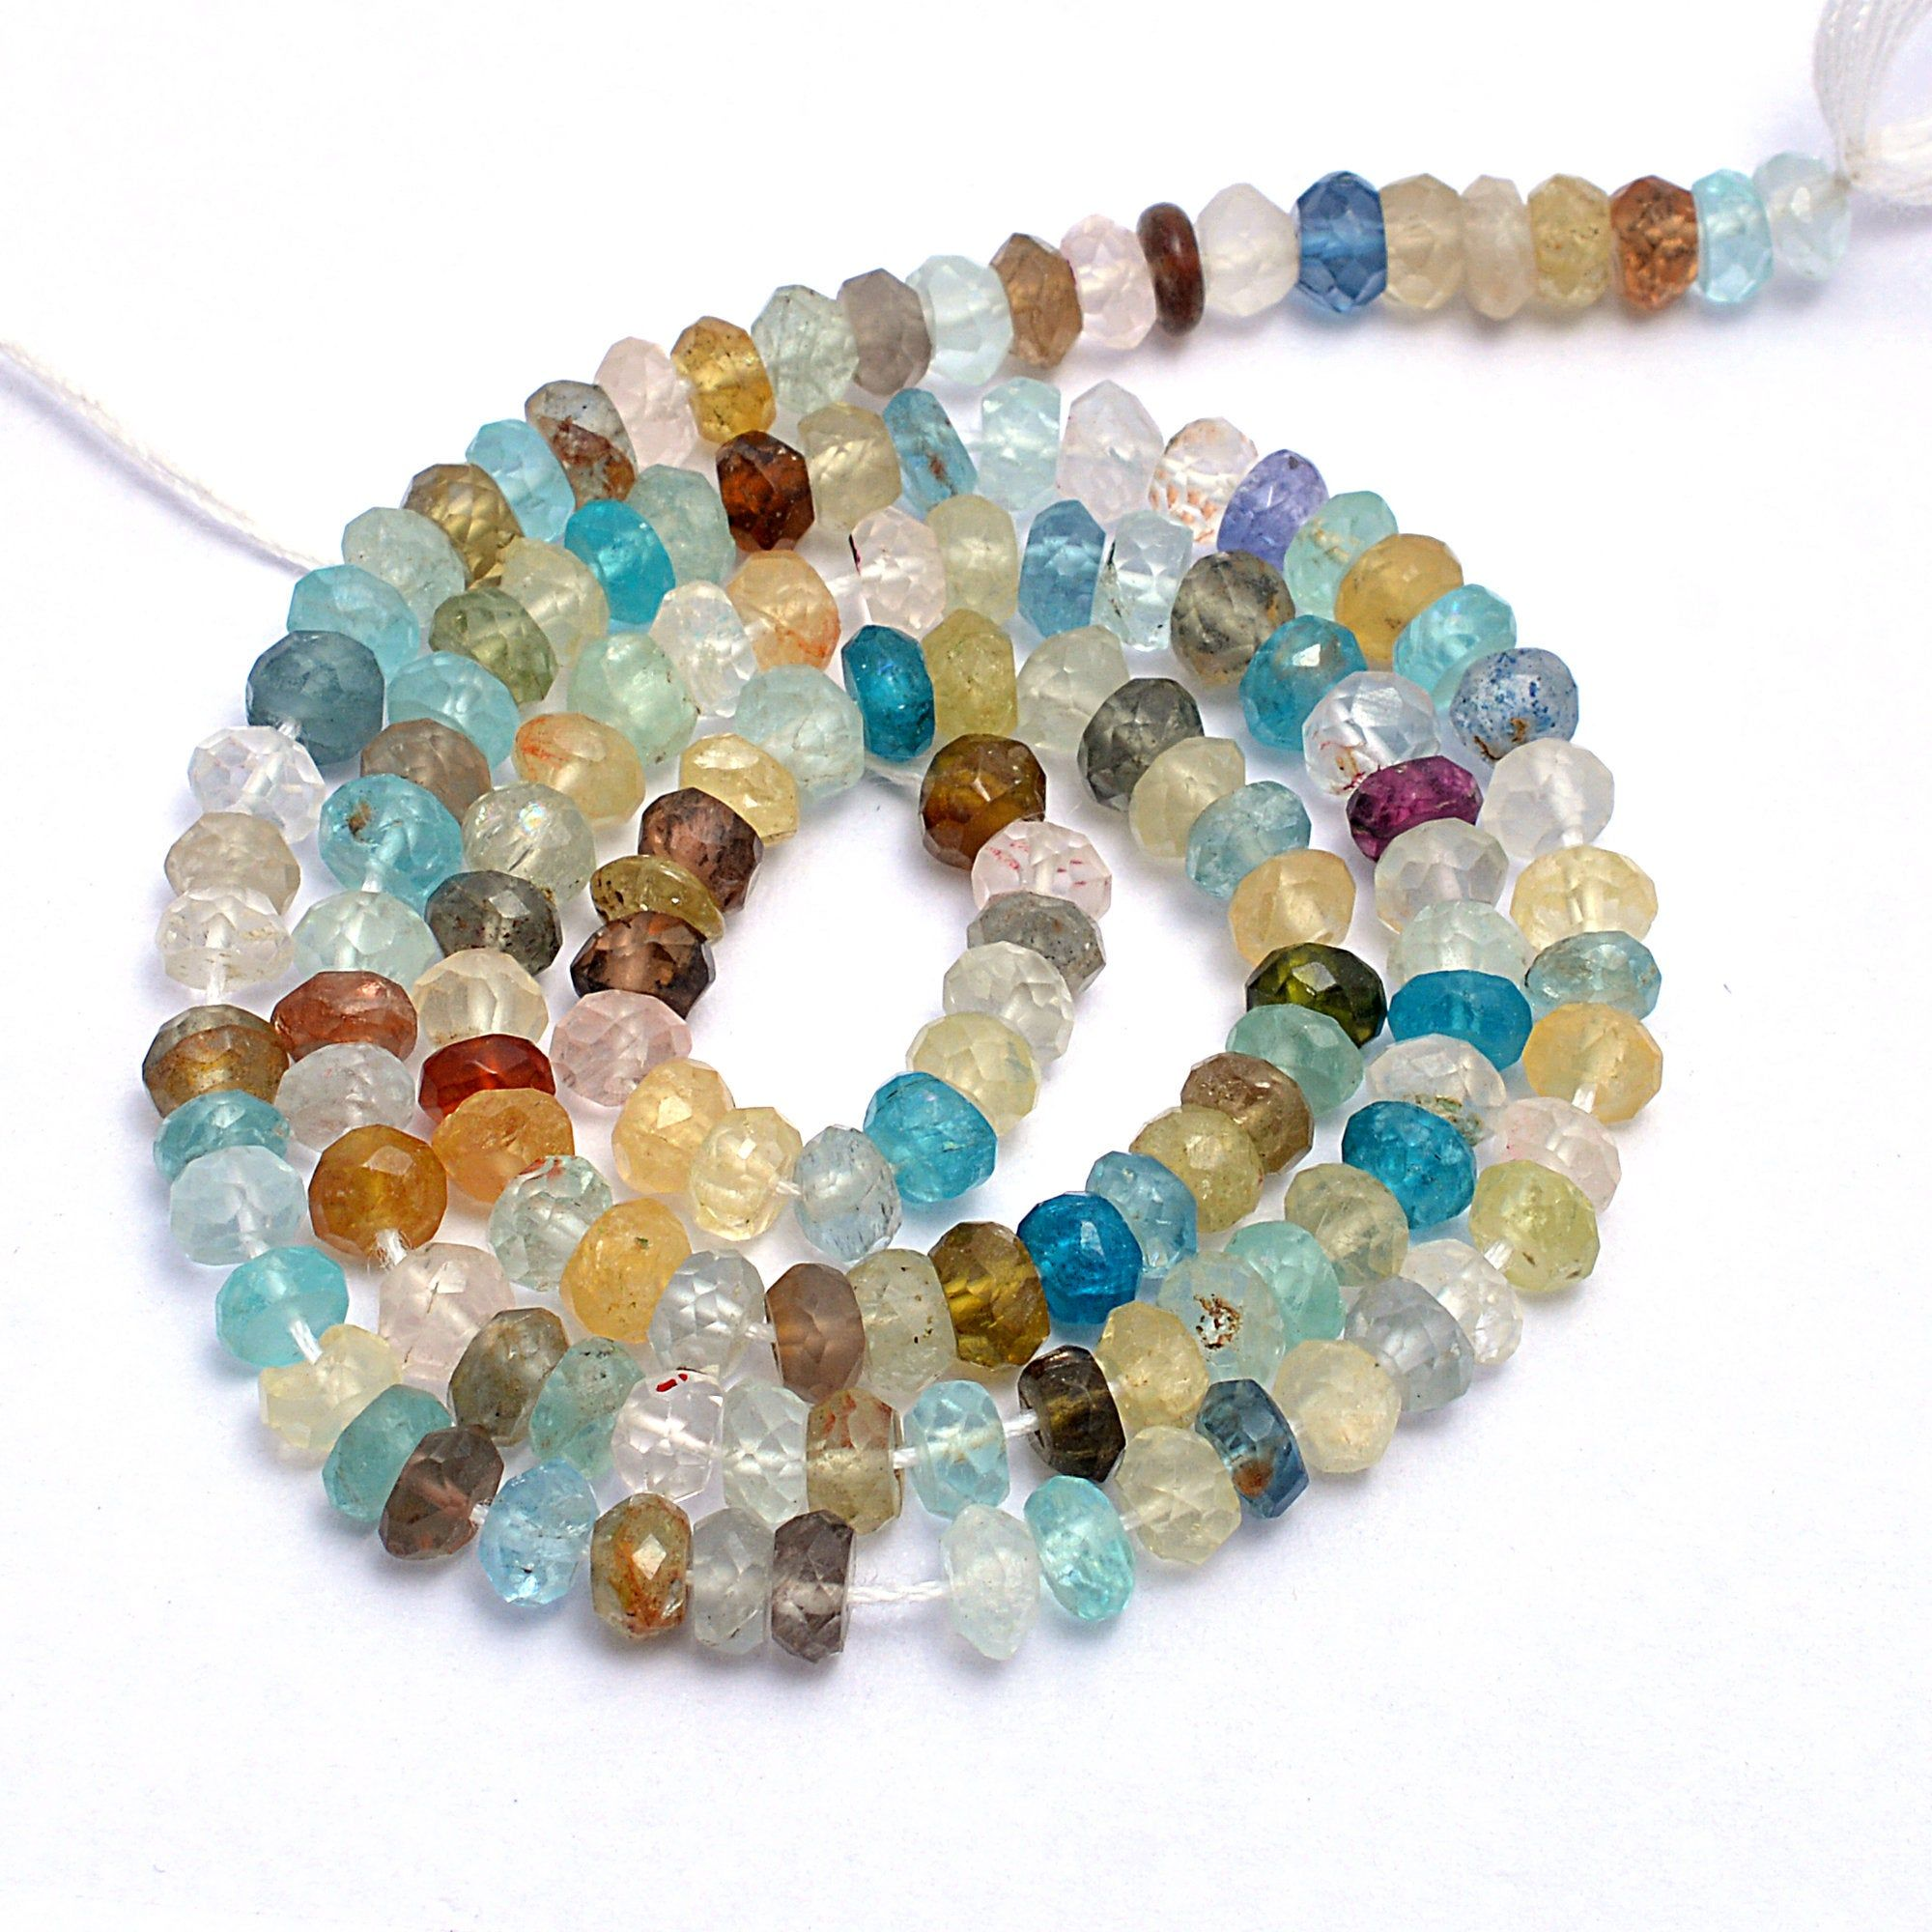 On Sale Lot of 100/% of Natural Amazonite Micro Faceted Rondelle 3.5 to 4 mm Gemstone Beads 13 Semi Precious Bead Gemstone Rondelle Beads